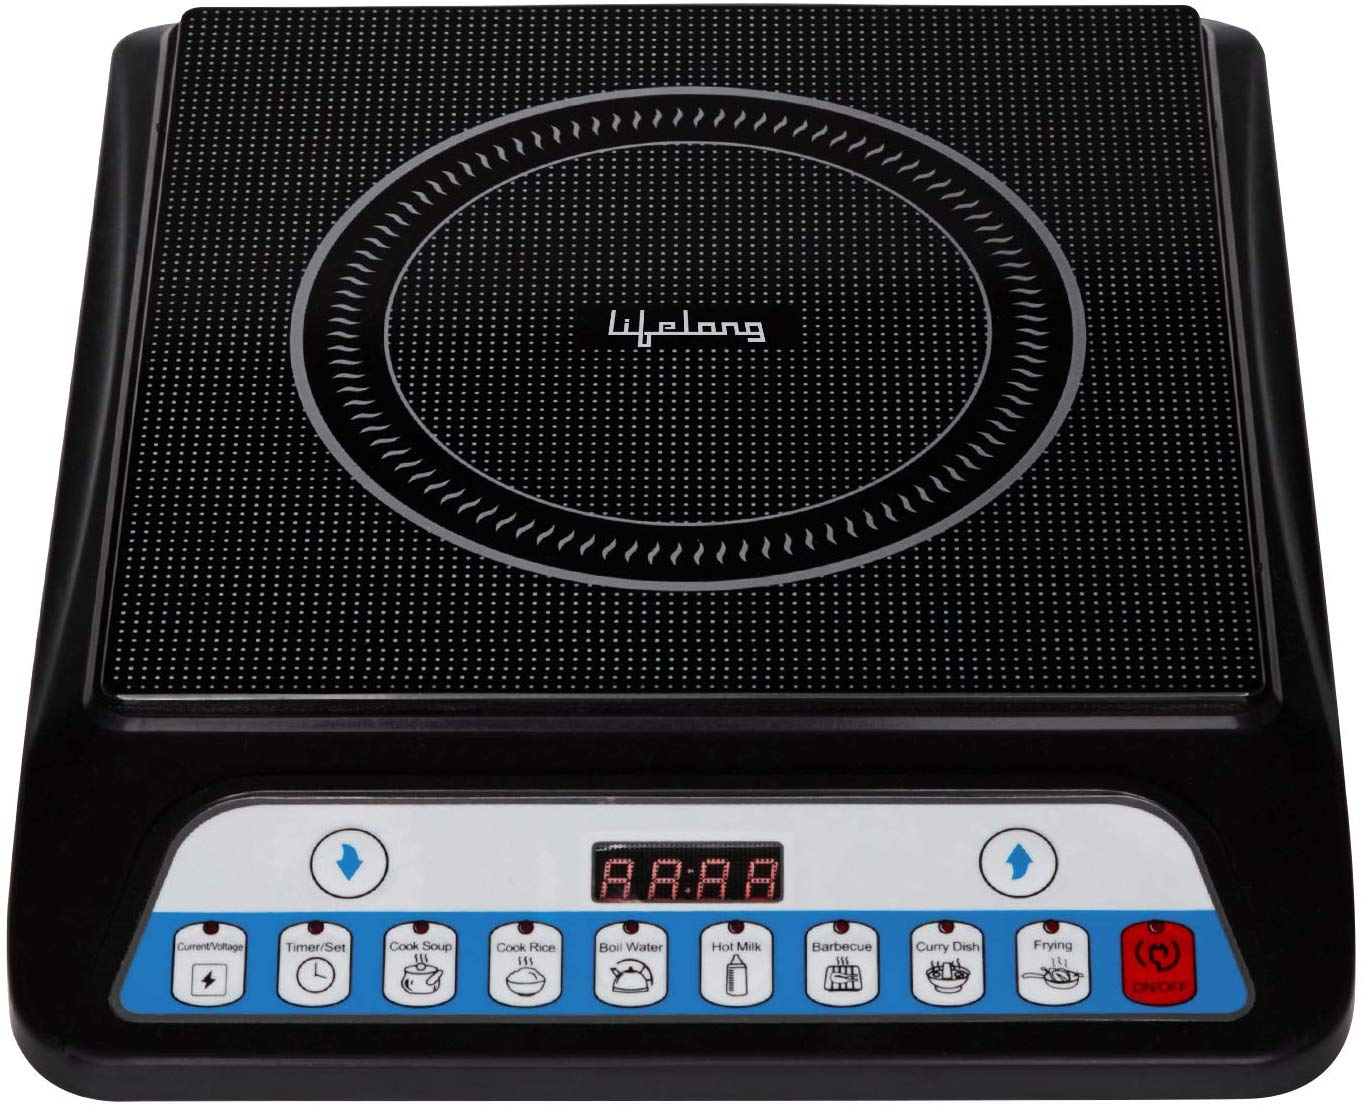 Lifelong Inferno LLIC12 2000-Watt Induction Cooktop